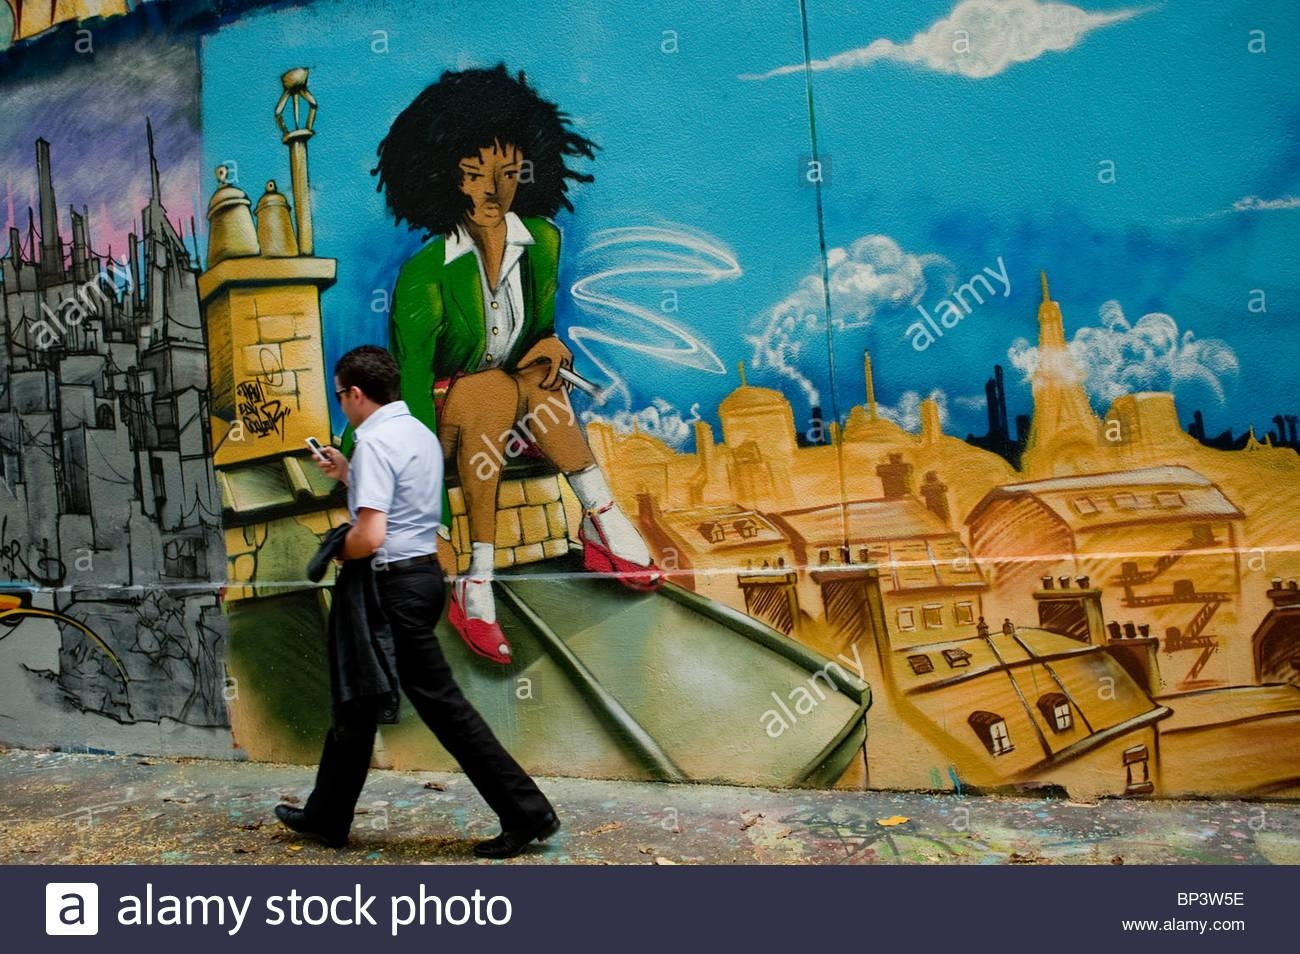 Paris, France, Street Scene, Man Walking, Painted Wall With Spray With Regard To Street Scene Wall Art (Image 10 of 20)